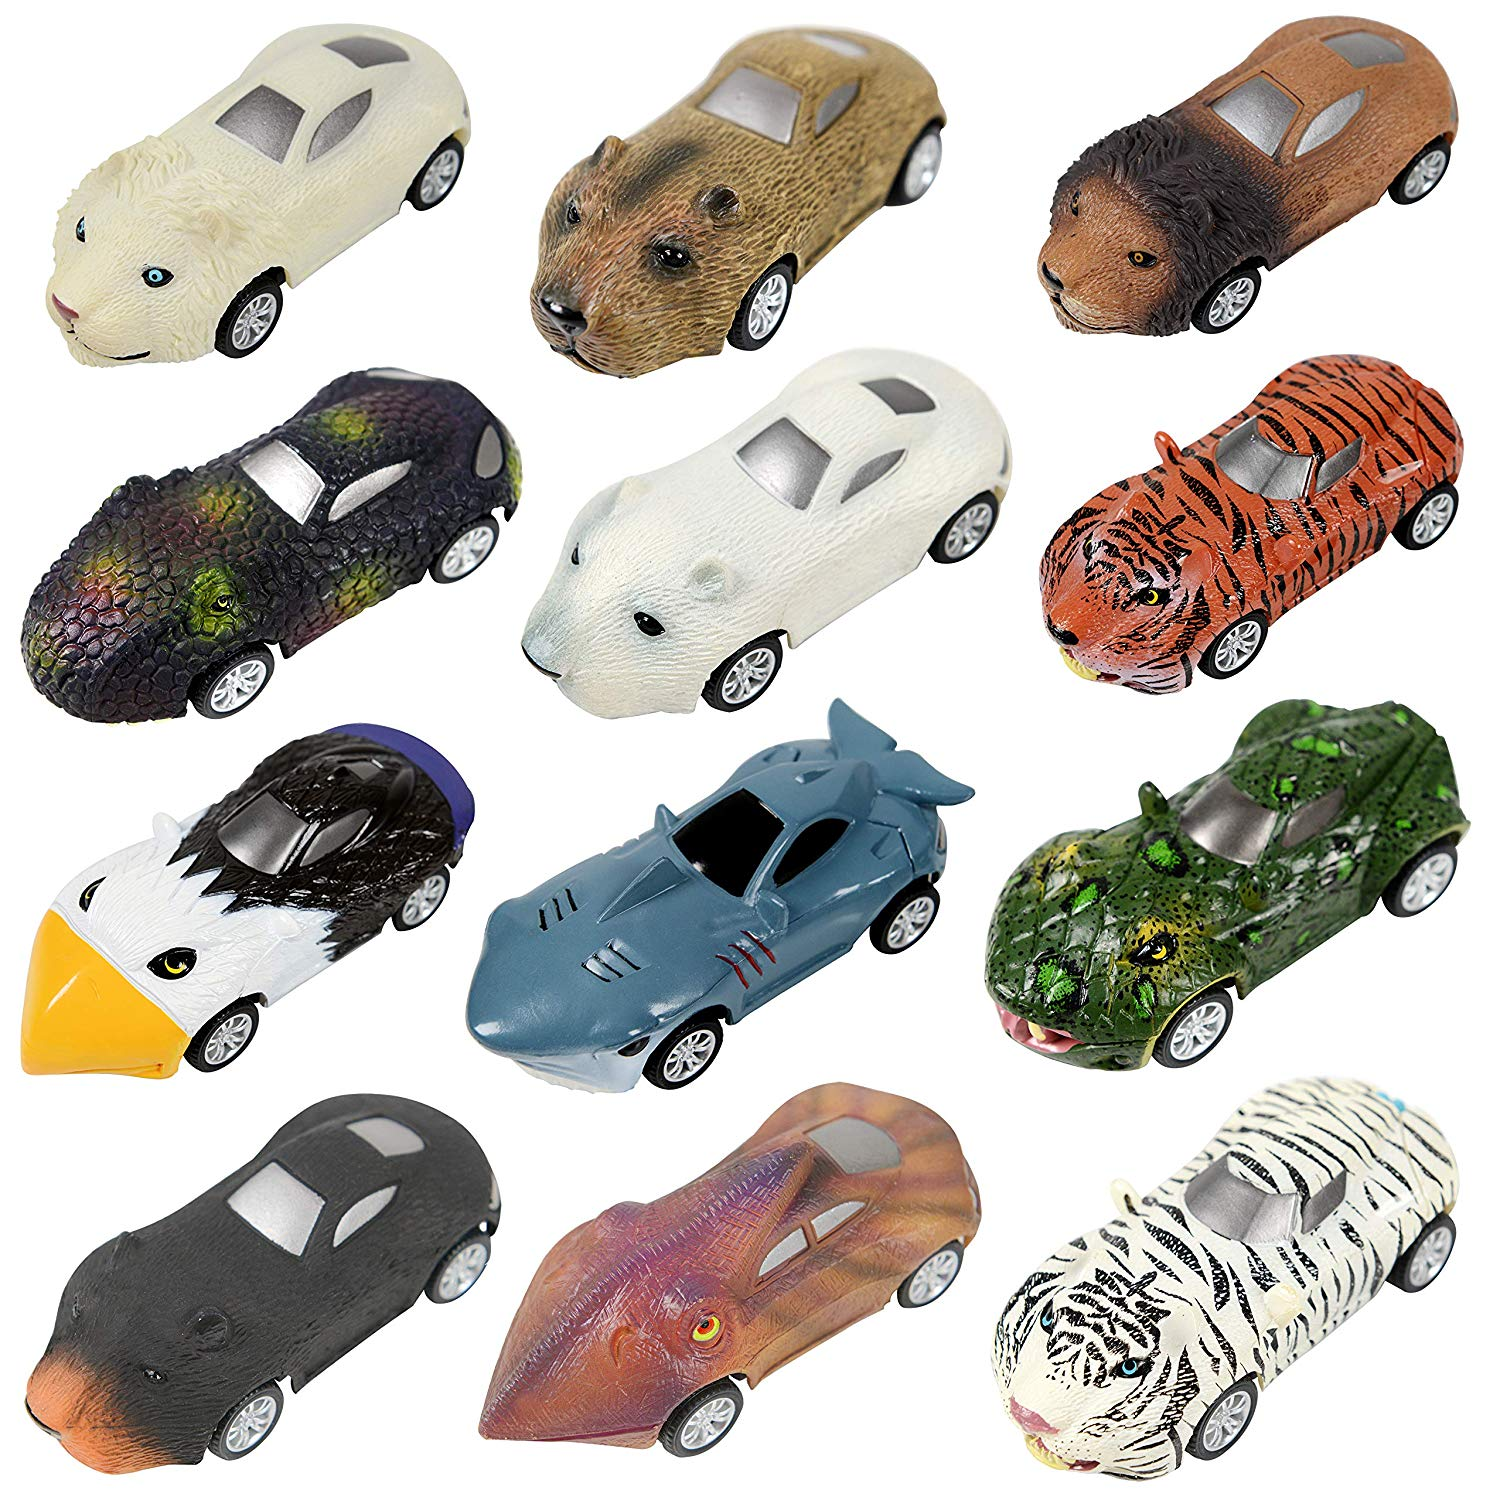 Original Color Animal Car,12 Pack Mini Pull Back Animal Vehicle Set,Mini Assorted Wild Animal Toy Car for Toddlers Boys Girls,Animal Vehicles Playset for Kids Party Favors